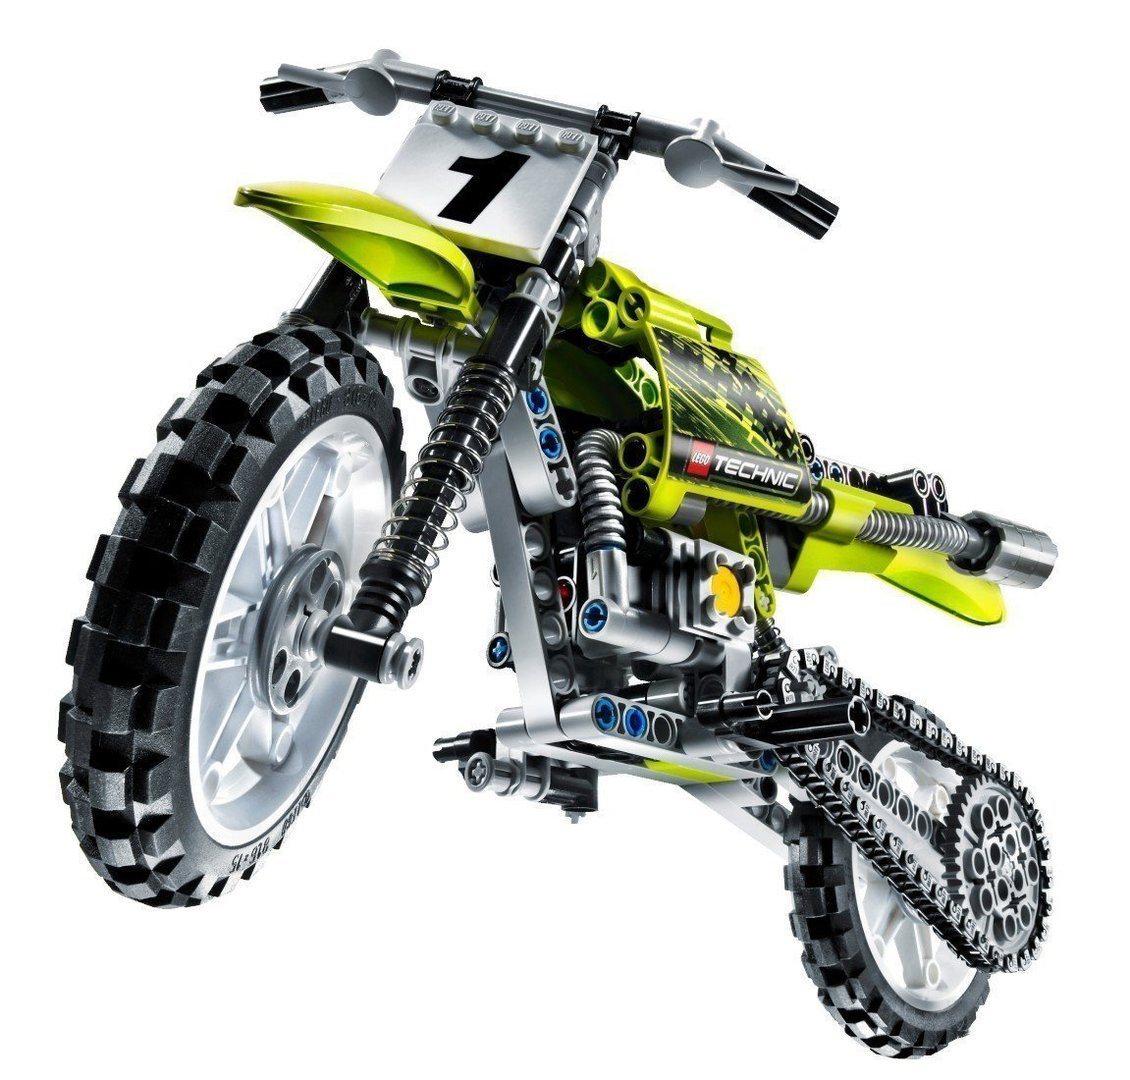 lego technic 8291 motocross bike miwarz spielzeug berlin. Black Bedroom Furniture Sets. Home Design Ideas